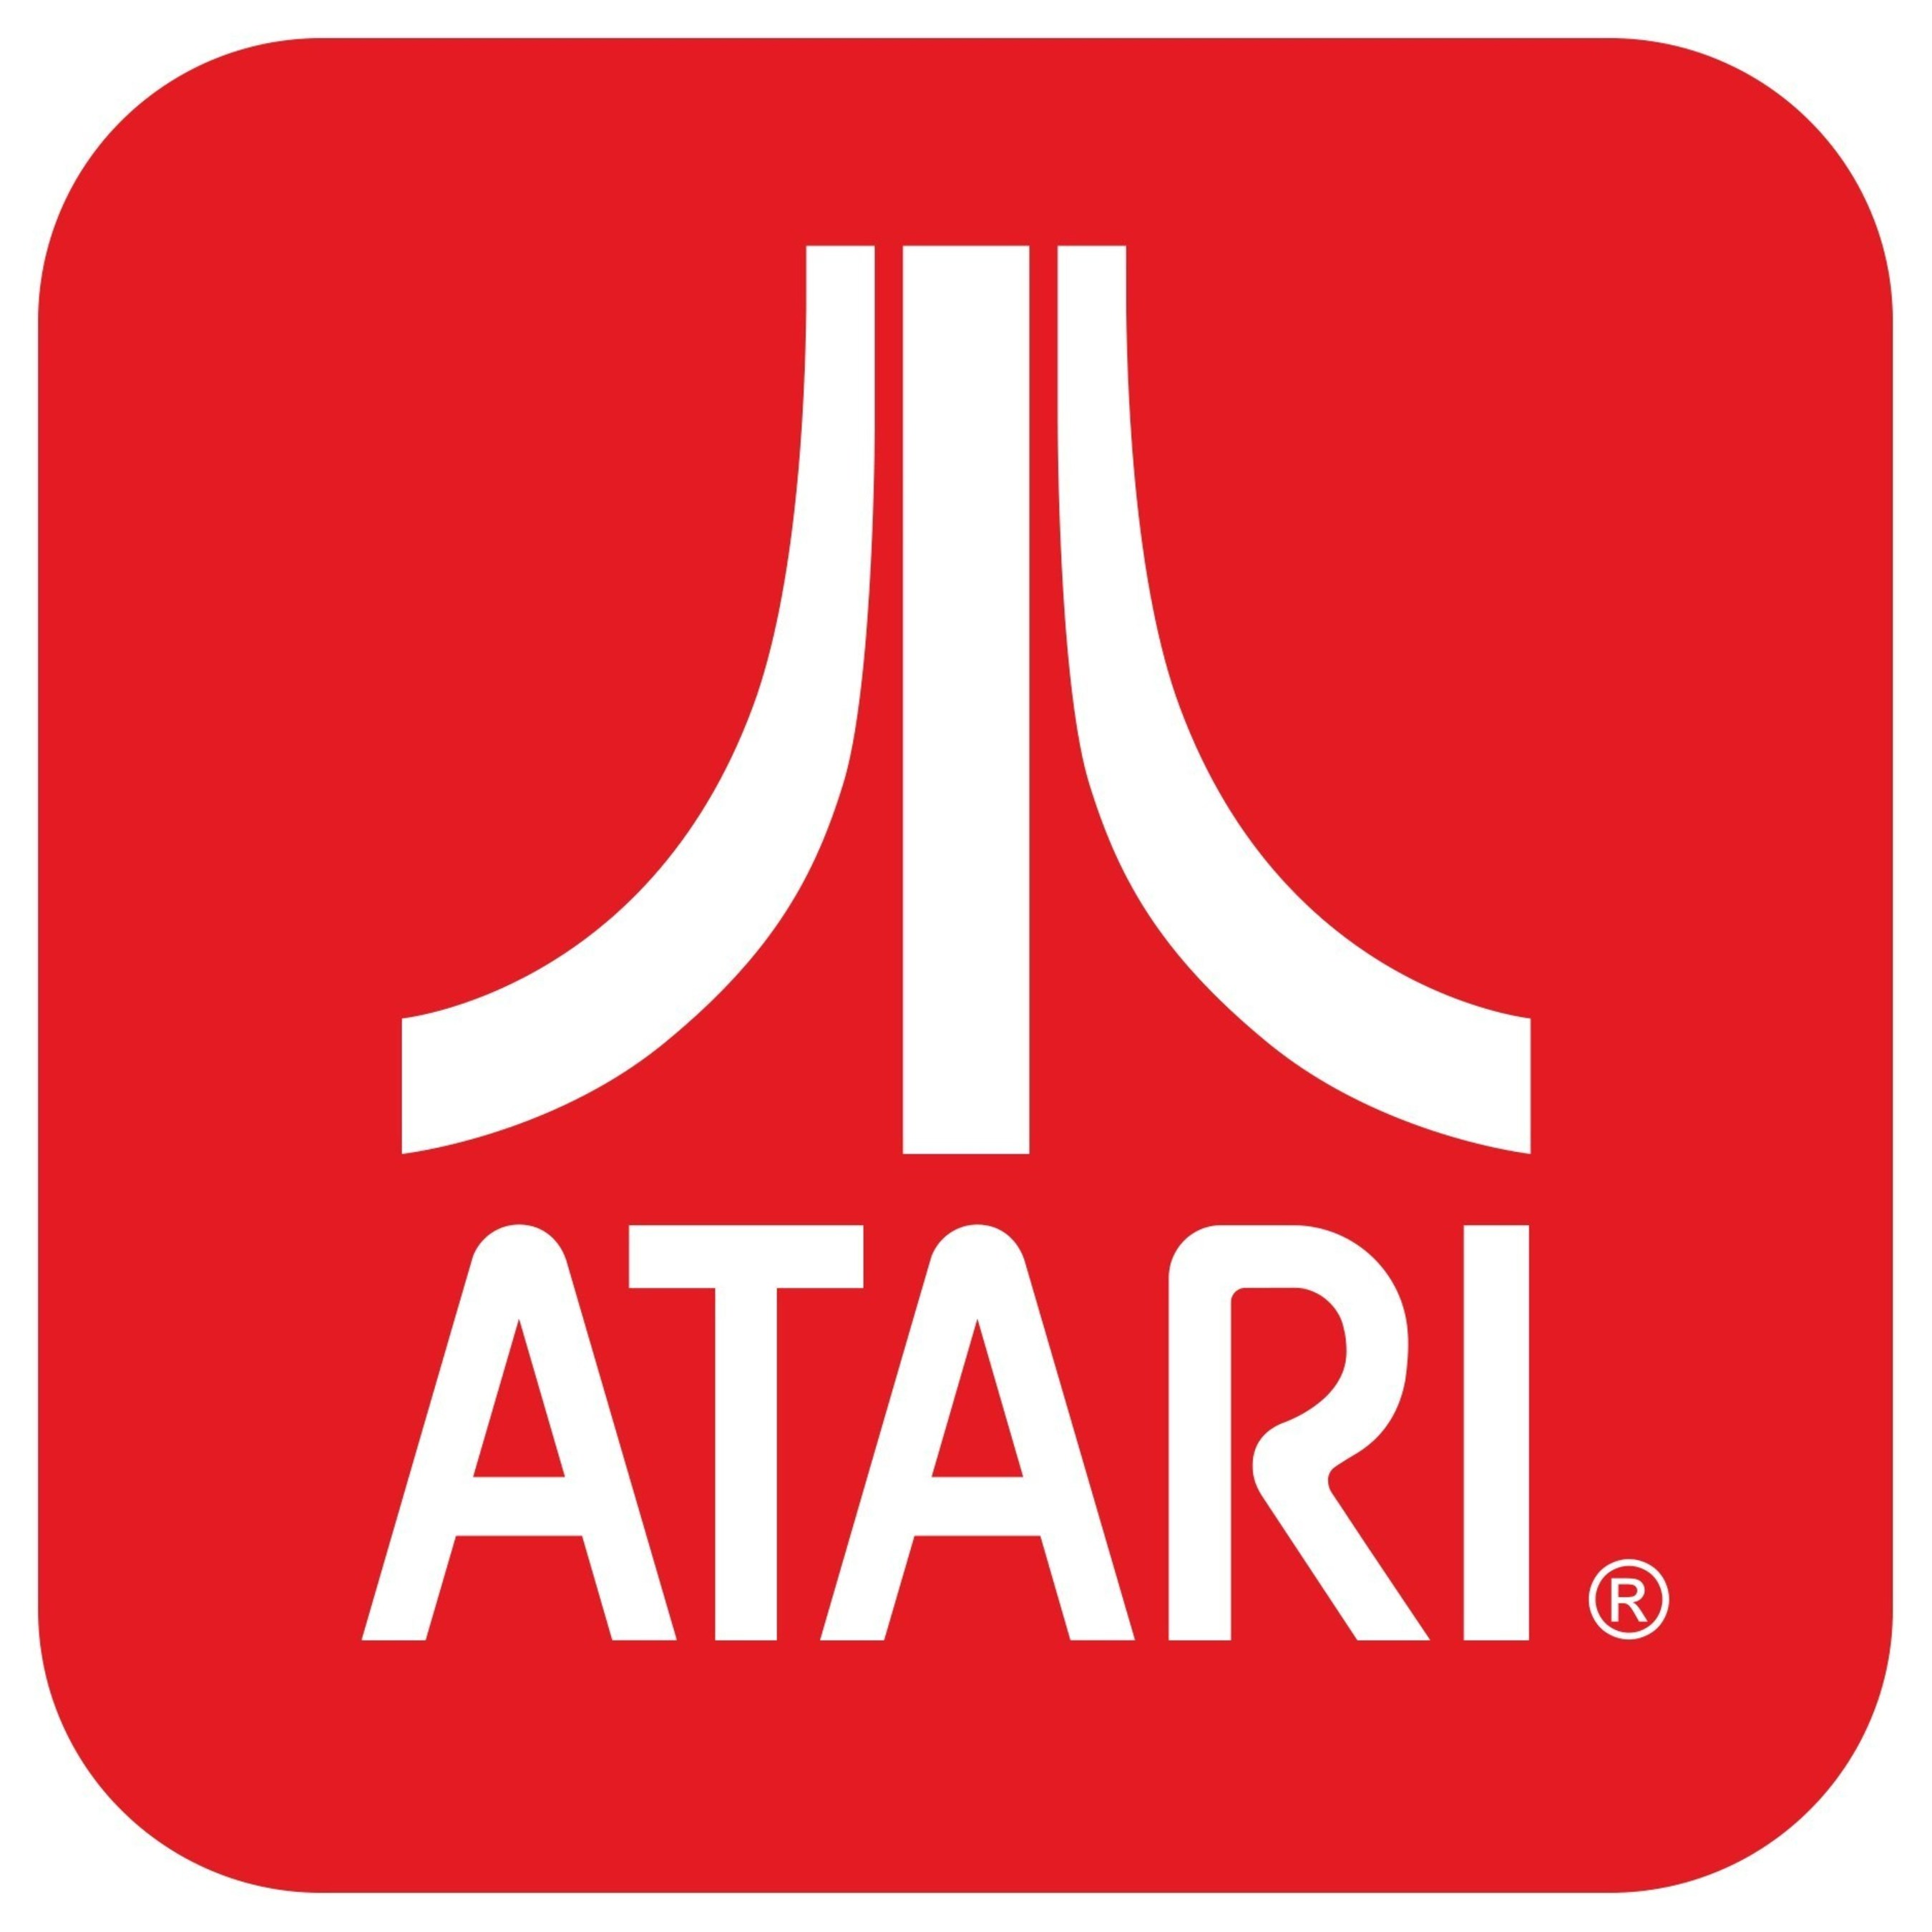 Atari' Celebrates LGBT Pride Month, Debuts Upcoming Mobile and Tablet Game Pridefest'' at NYC Pride and Flame Con